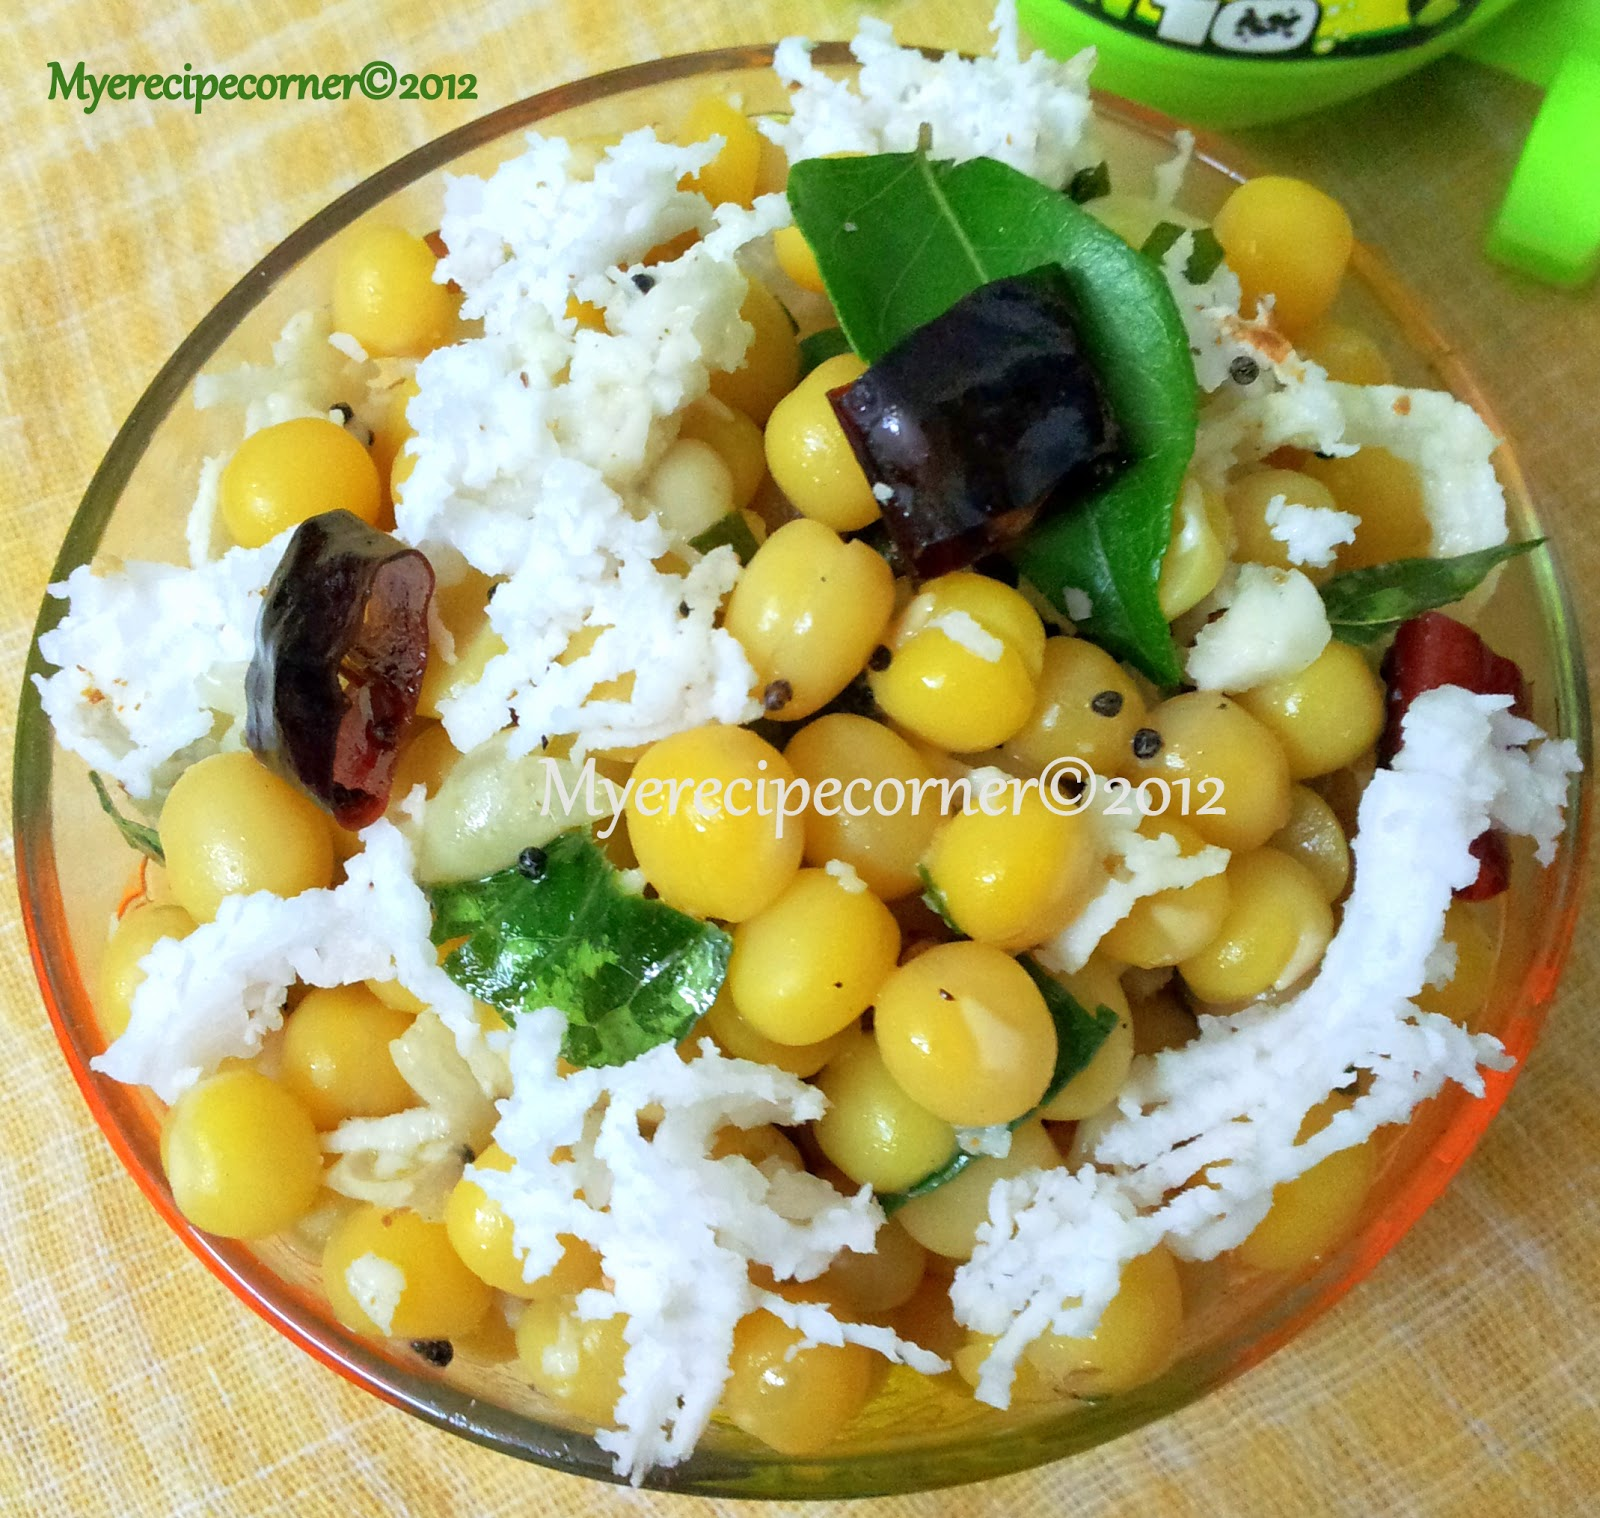 Myes kitchen pattani sundal peas sundal kids lunch box recipes healthy snack ideas forumfinder Gallery